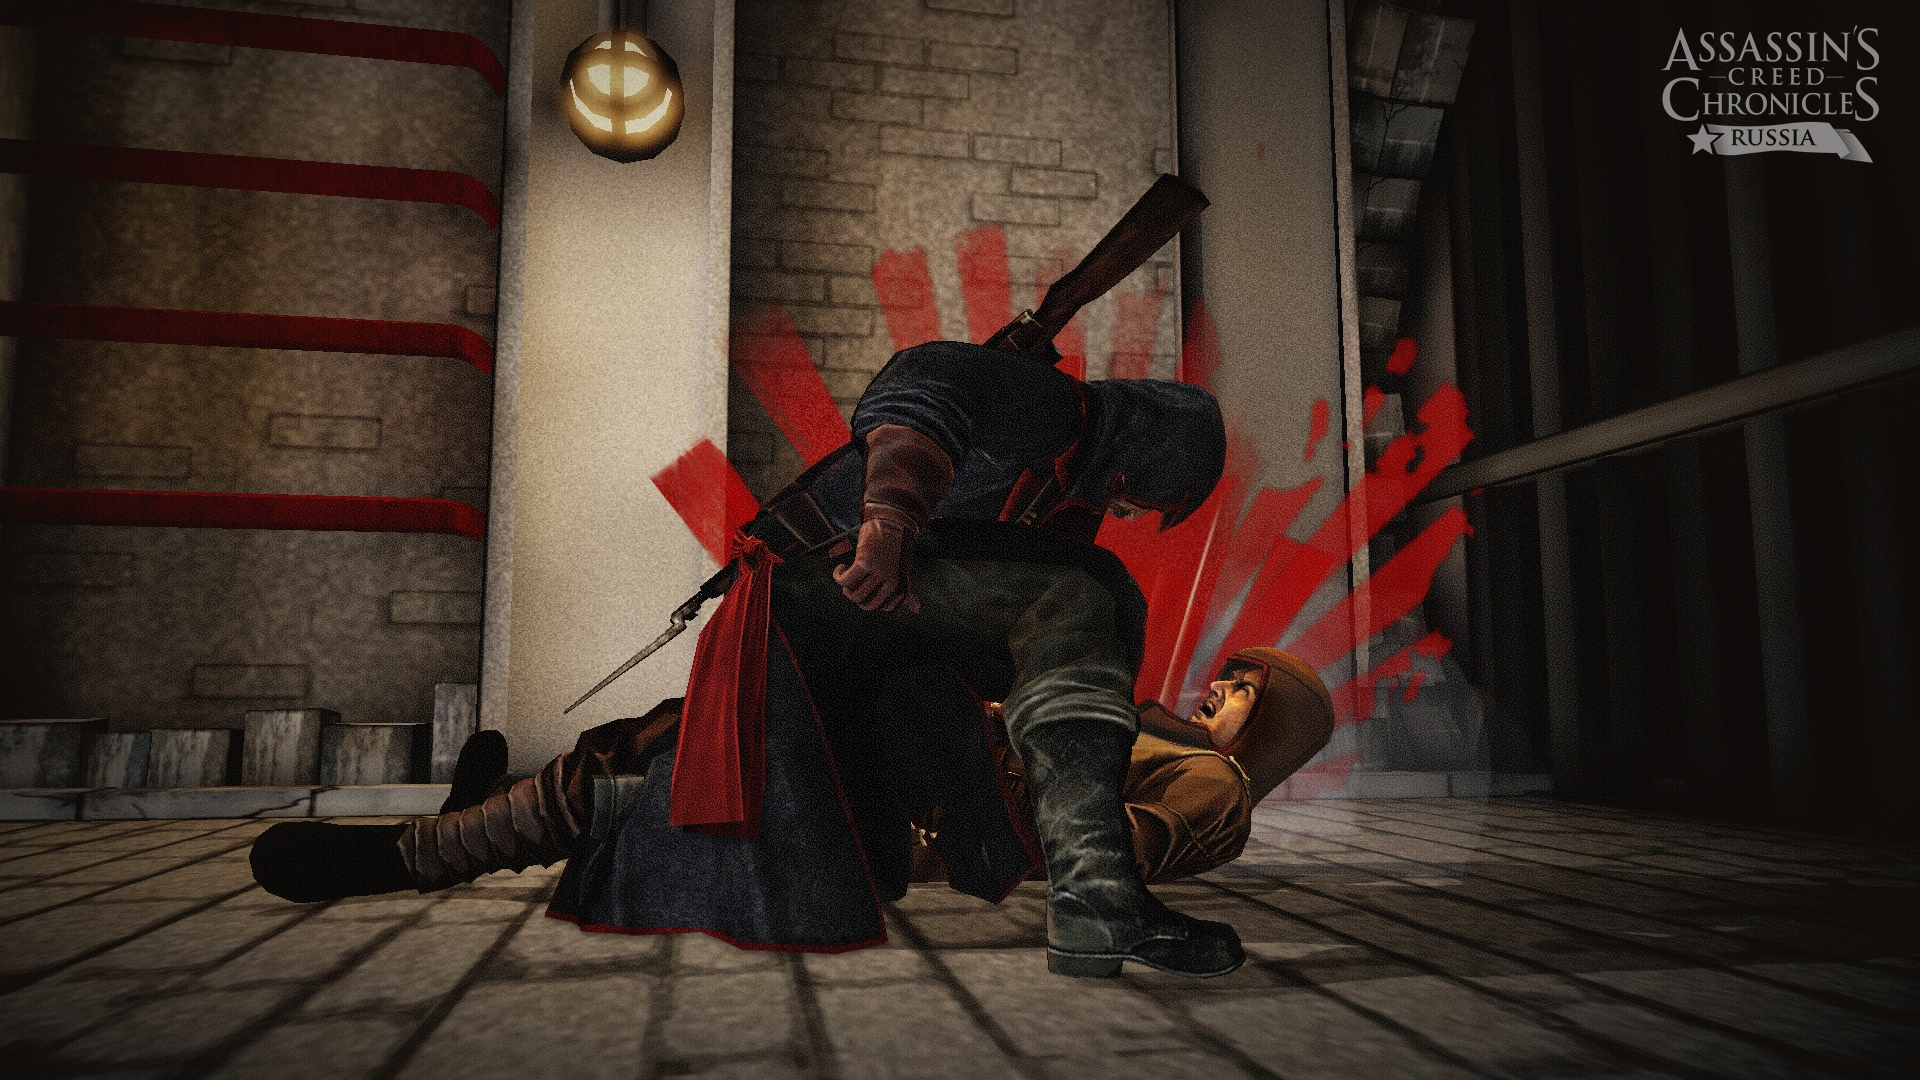 Ubisoft - Assassin's Creed Chronicles Russia